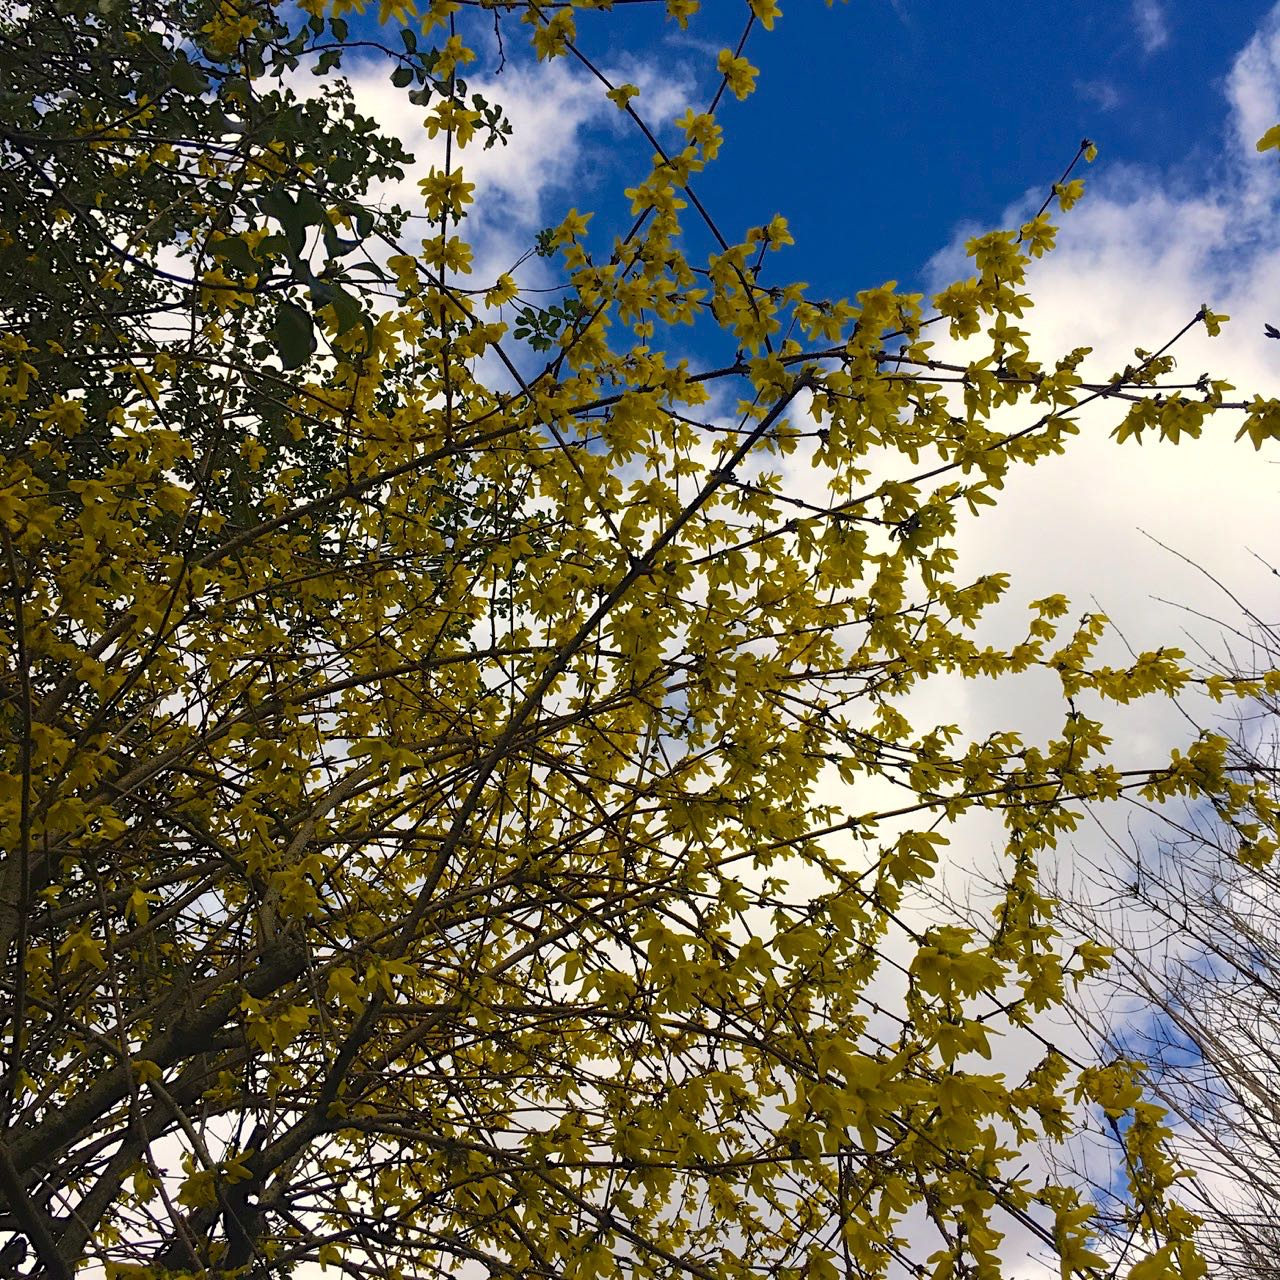 Forsythia reaching for the sky